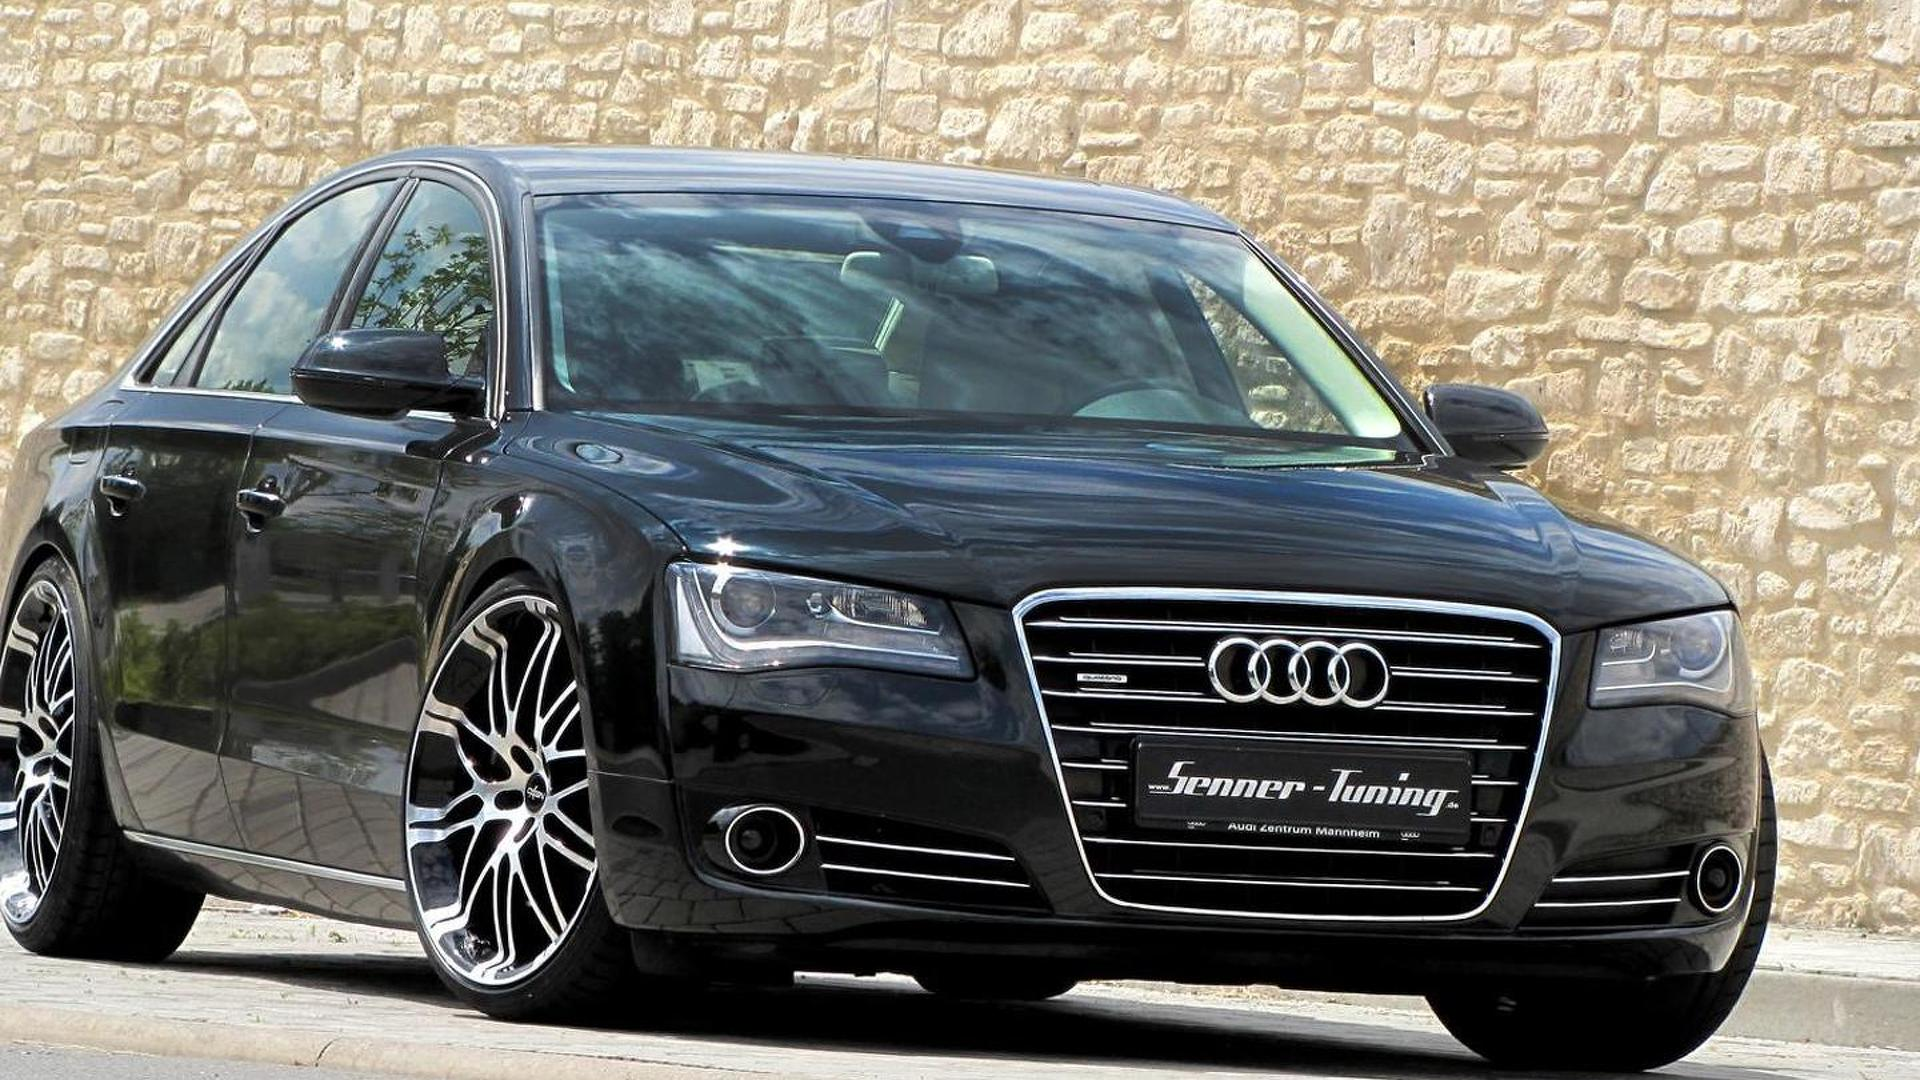 audi a8 4 2 v8 upgraded by senner tuning to 397 ps. Black Bedroom Furniture Sets. Home Design Ideas